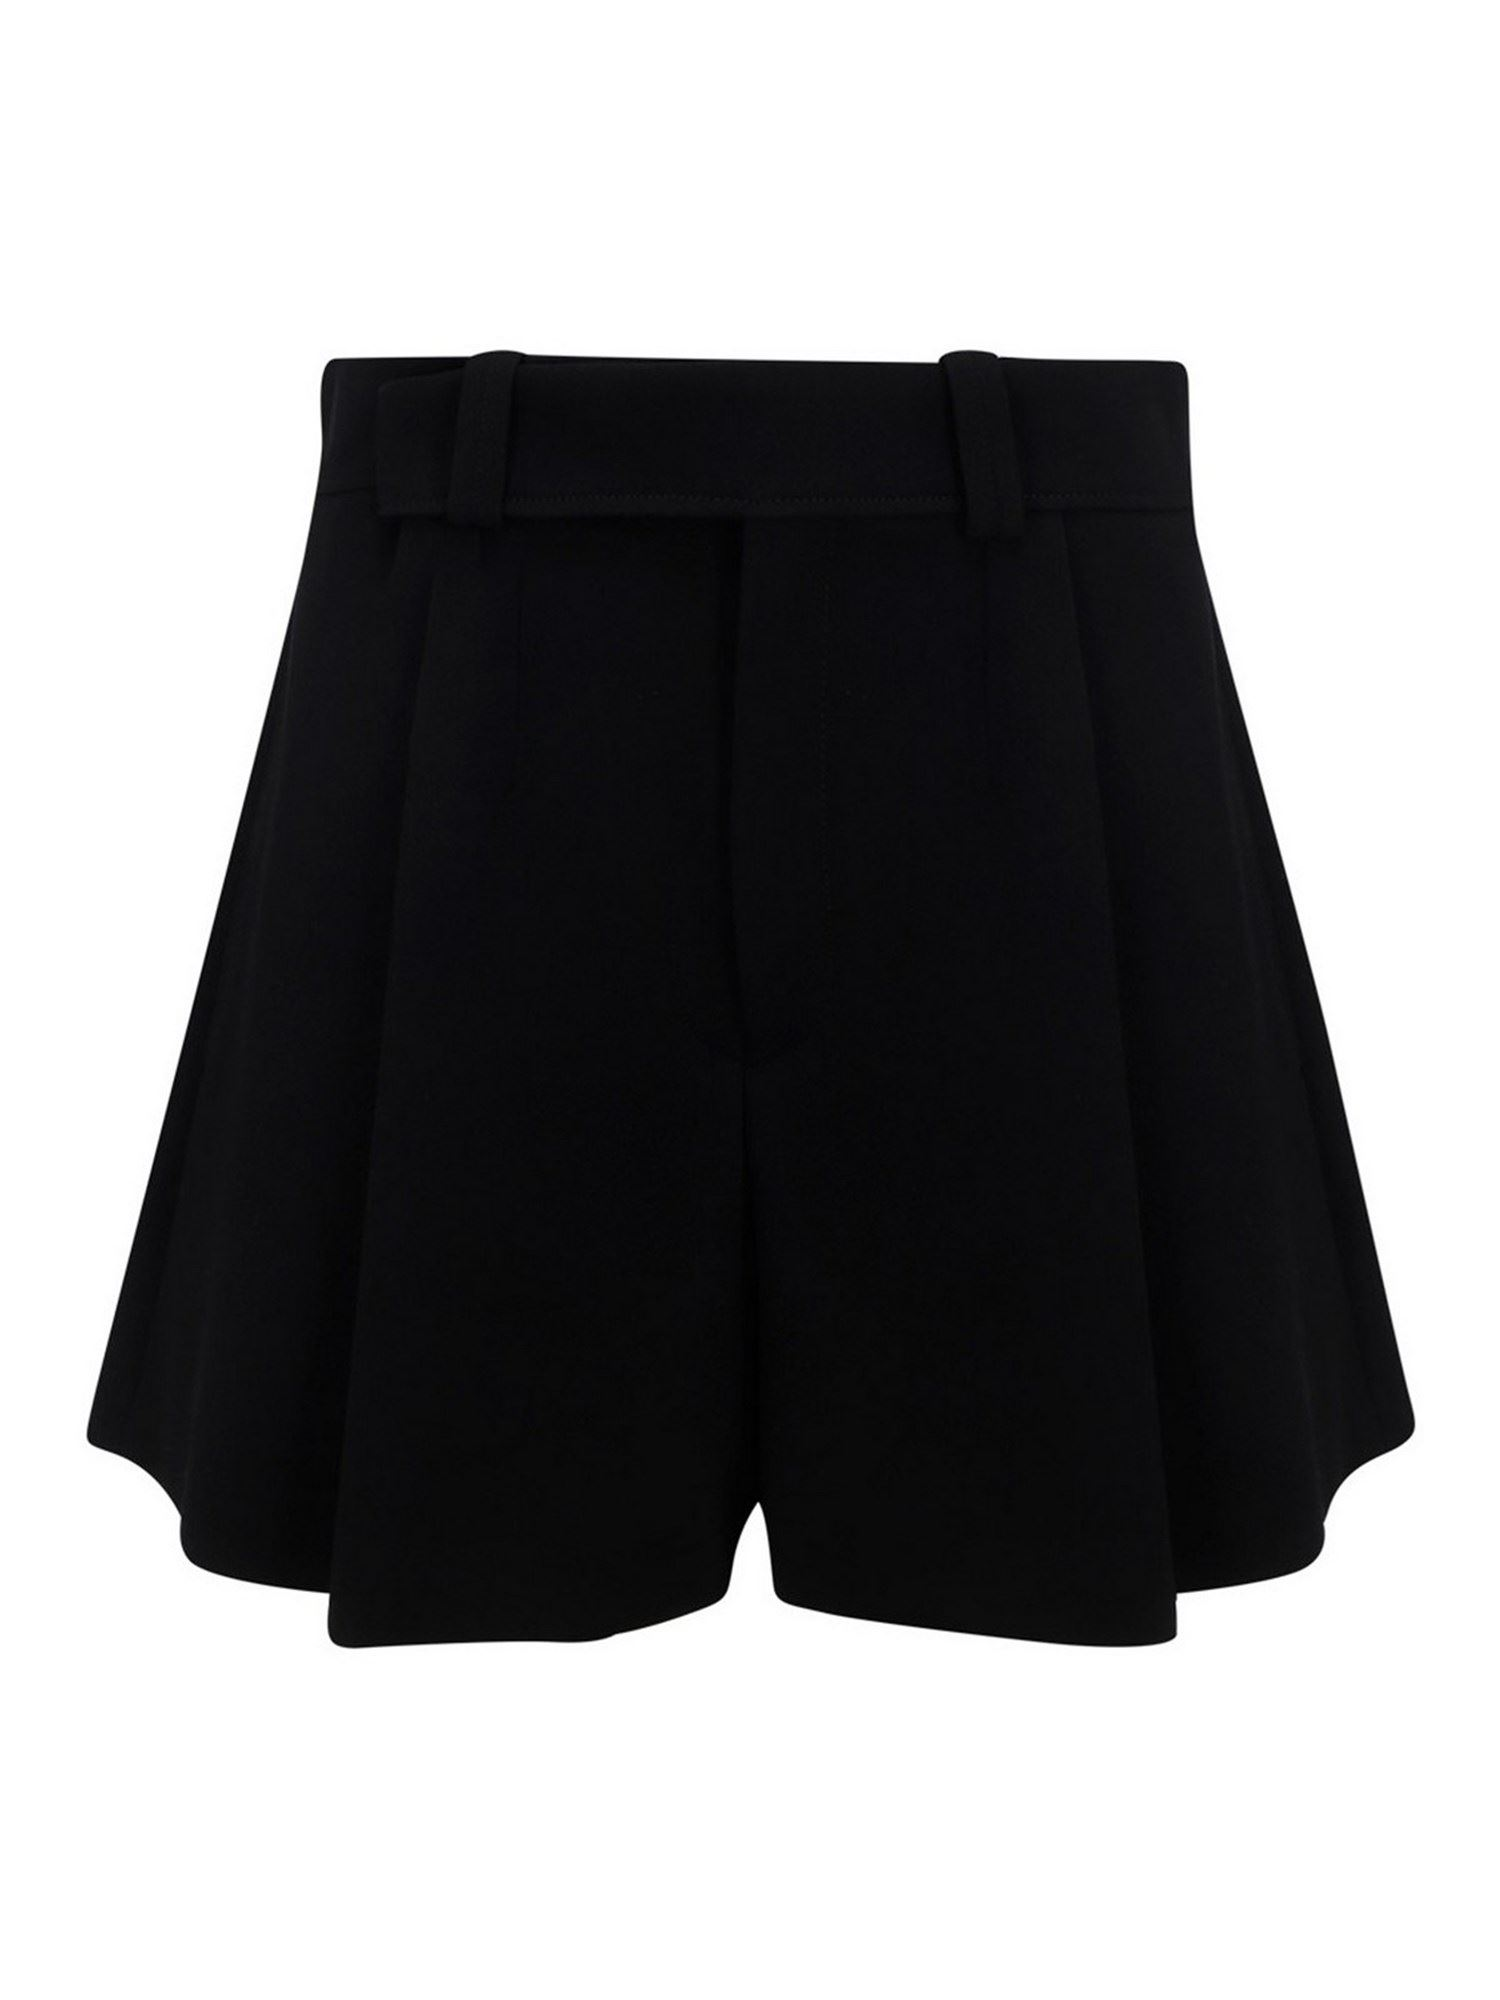 Chloé COTTON BERMUDA SHORTS IN BLACK